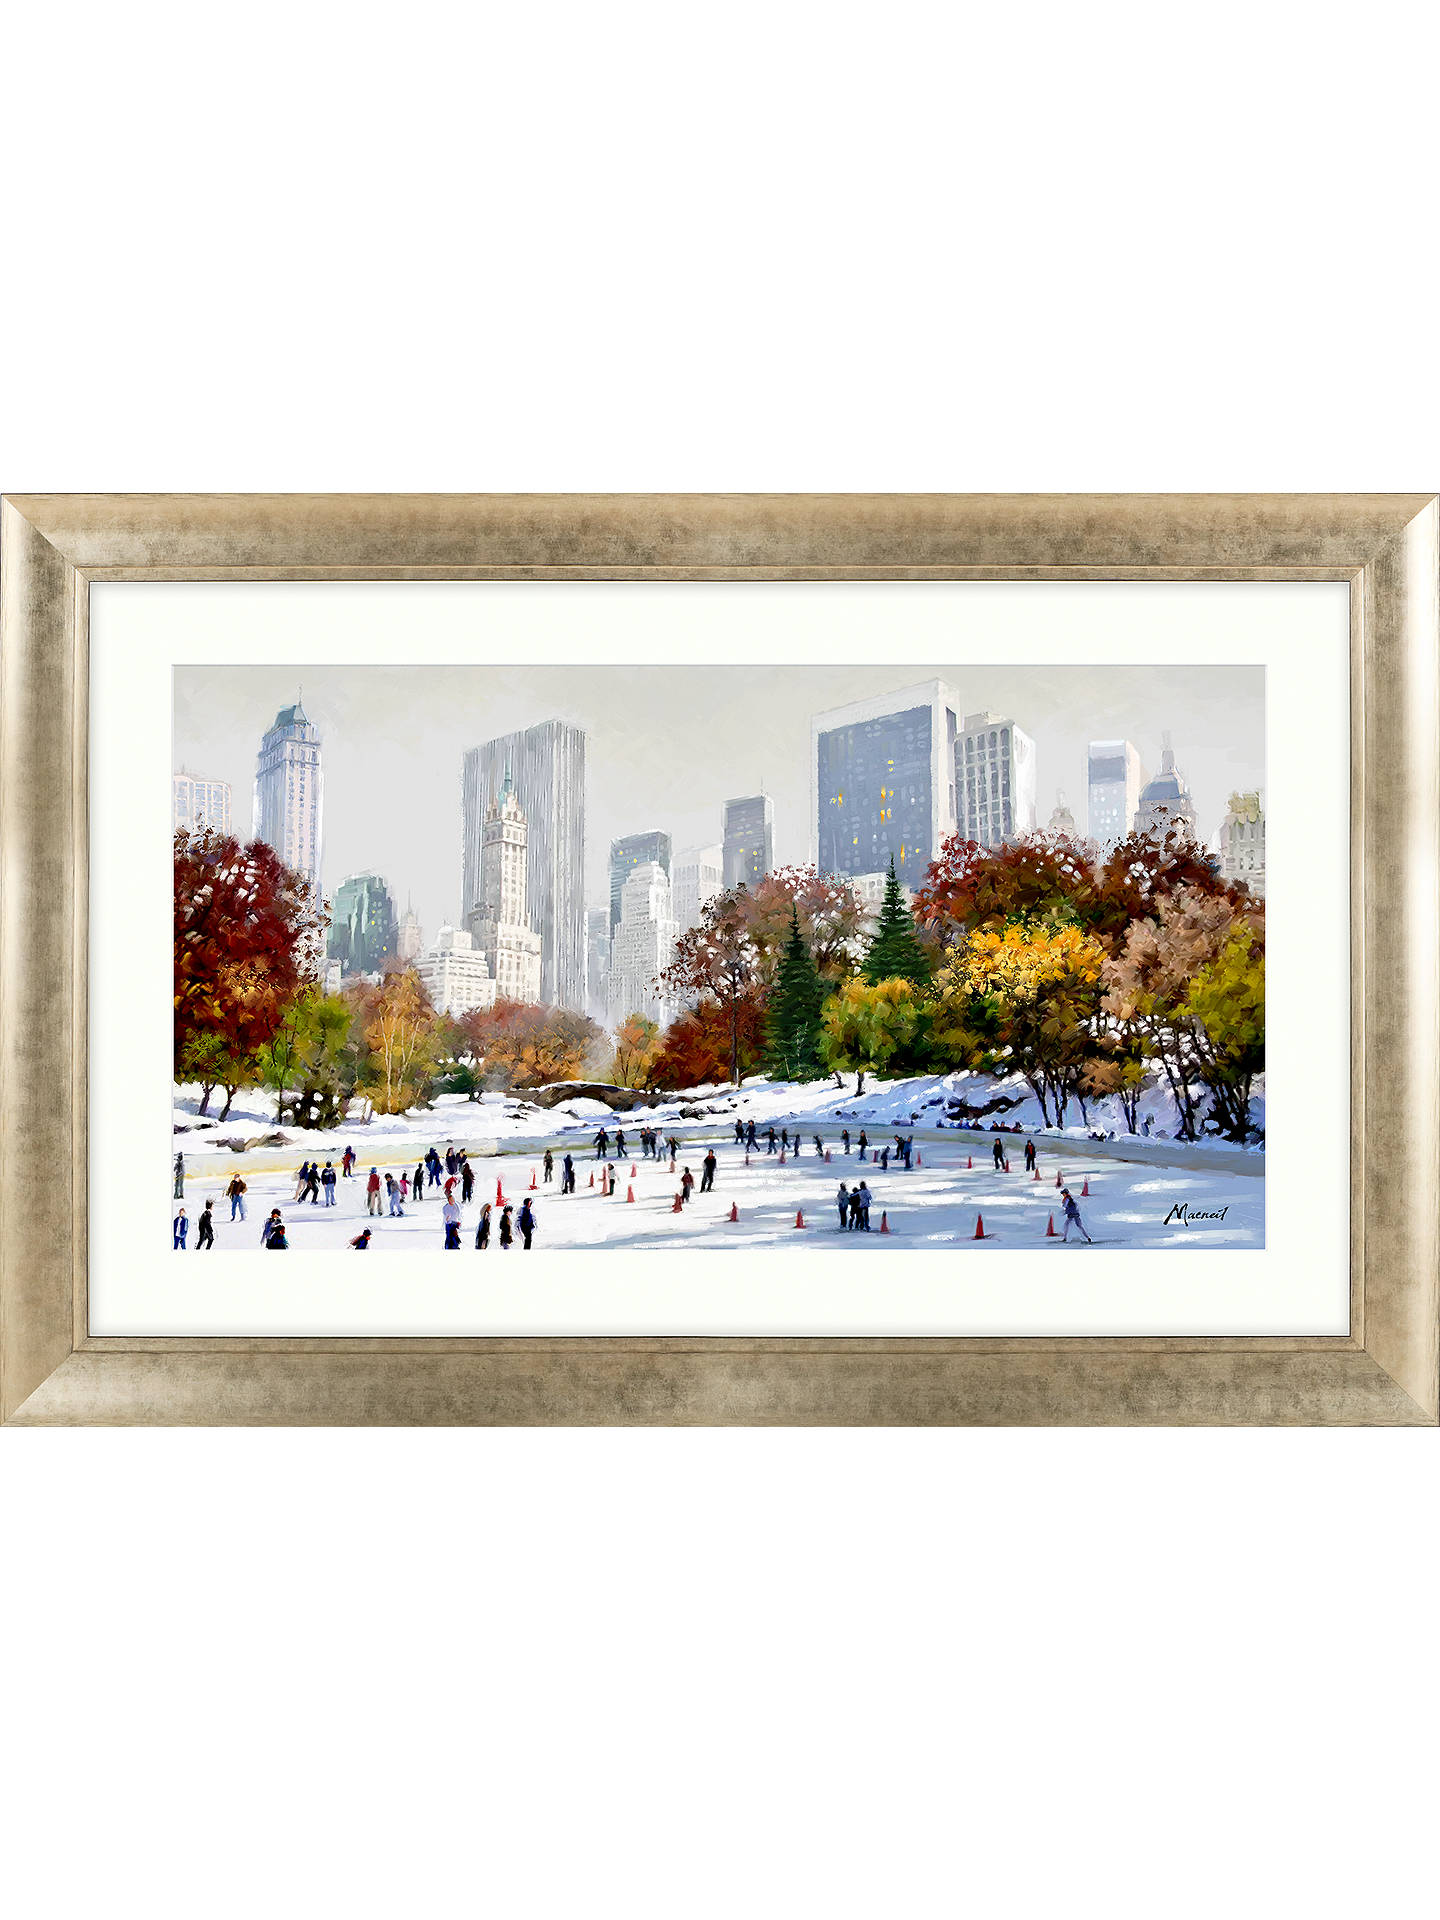 Buy Richard Macneil - Skating In New York Framed Print, 72 x 112cm Online at johnlewis.com